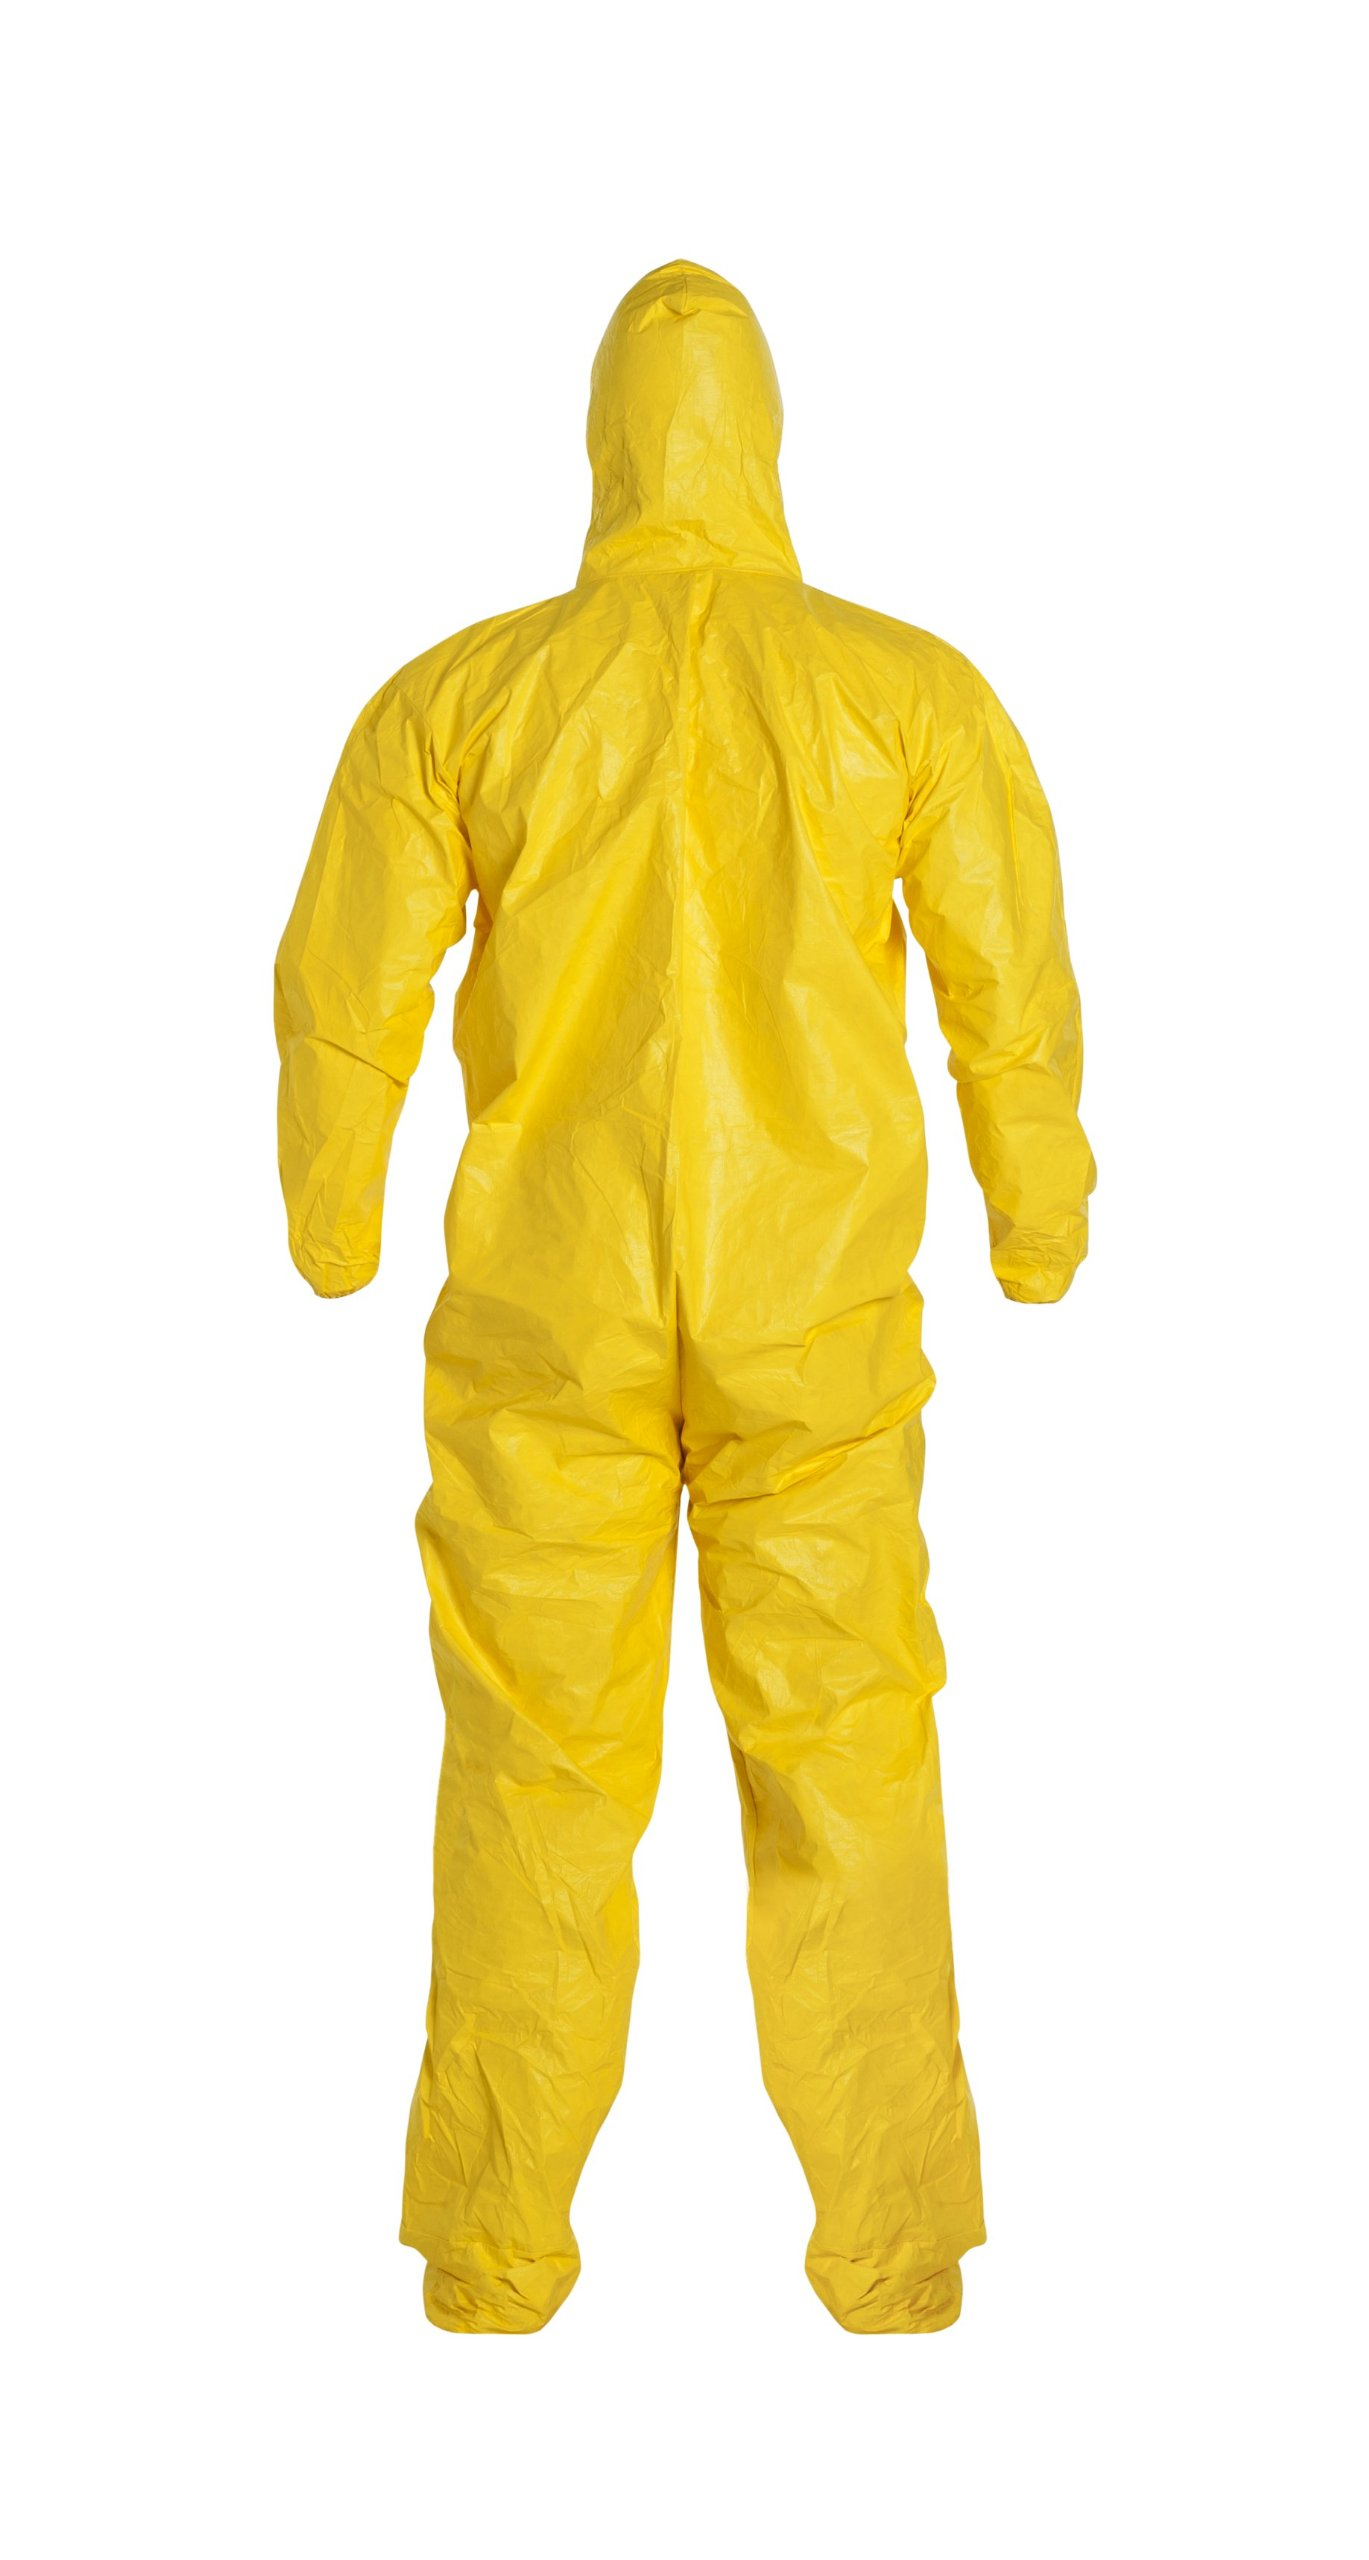 DuPont Tychem 2000 Disposable Chemical Resistant Coverall with Elastic Cuff, Hood and Socks, Yellow, X-Large, 12-Pack by DuPont